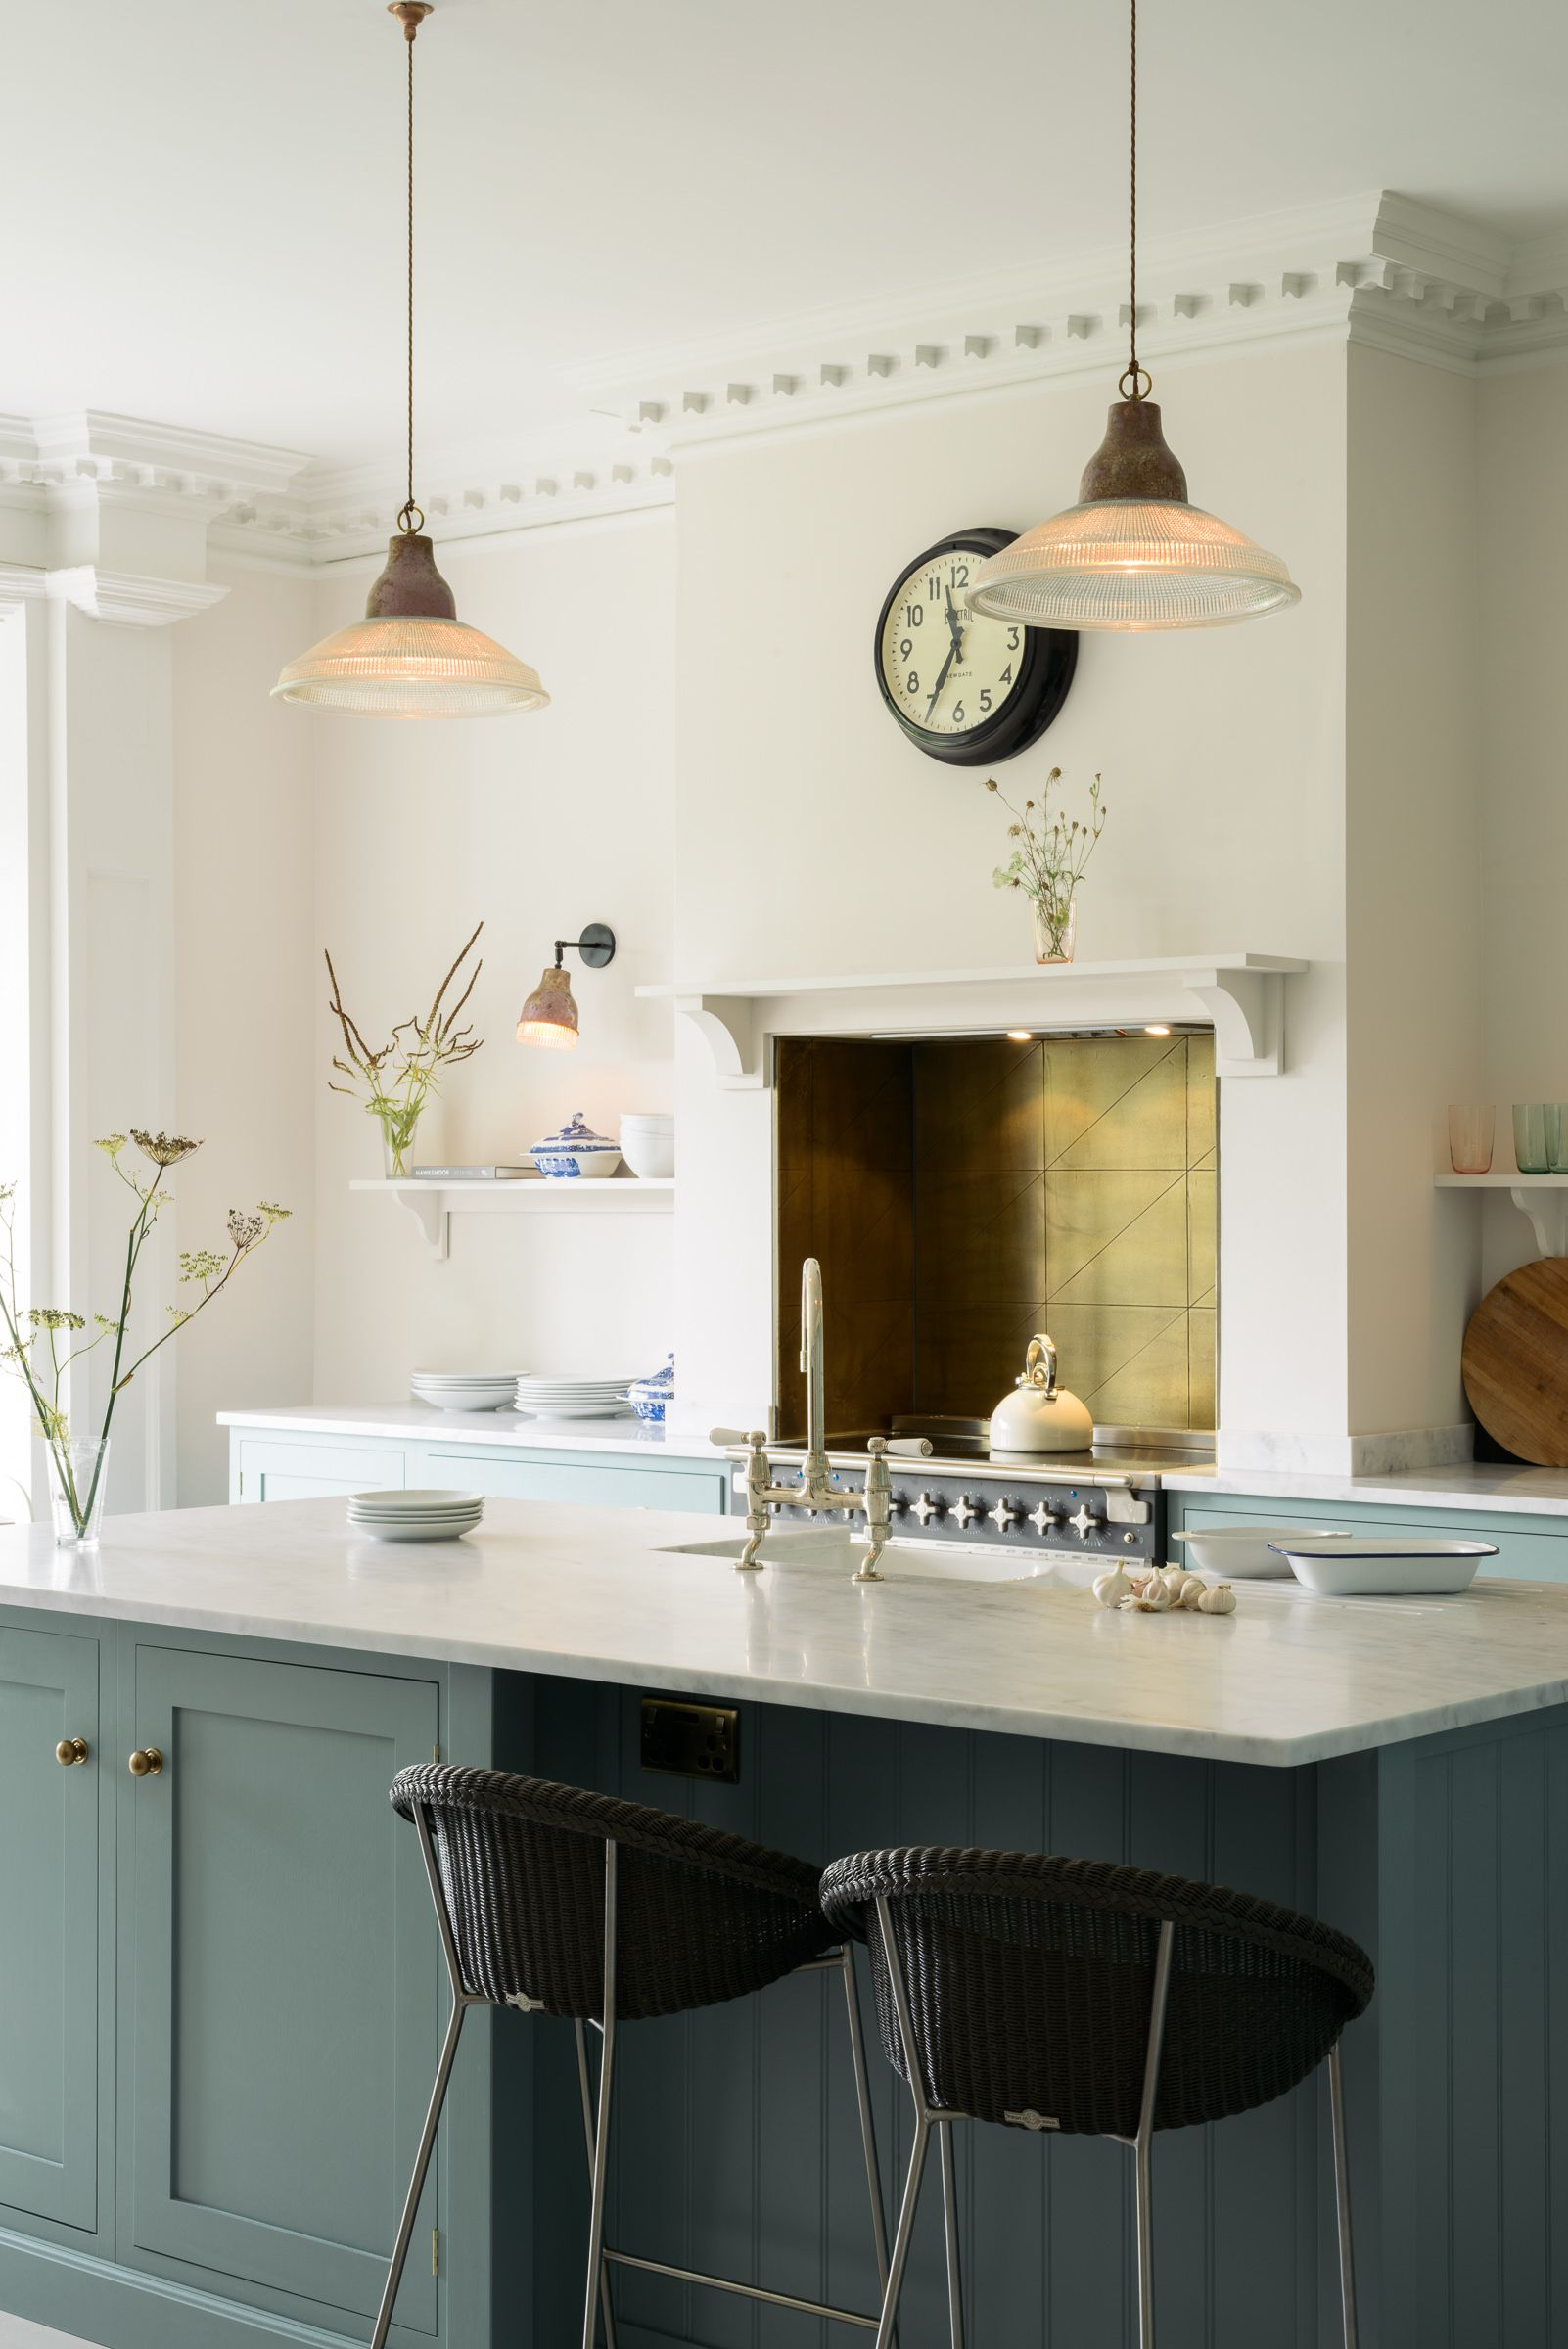 A brass tiled splashback adds some warmth to this stylish Shaker ...